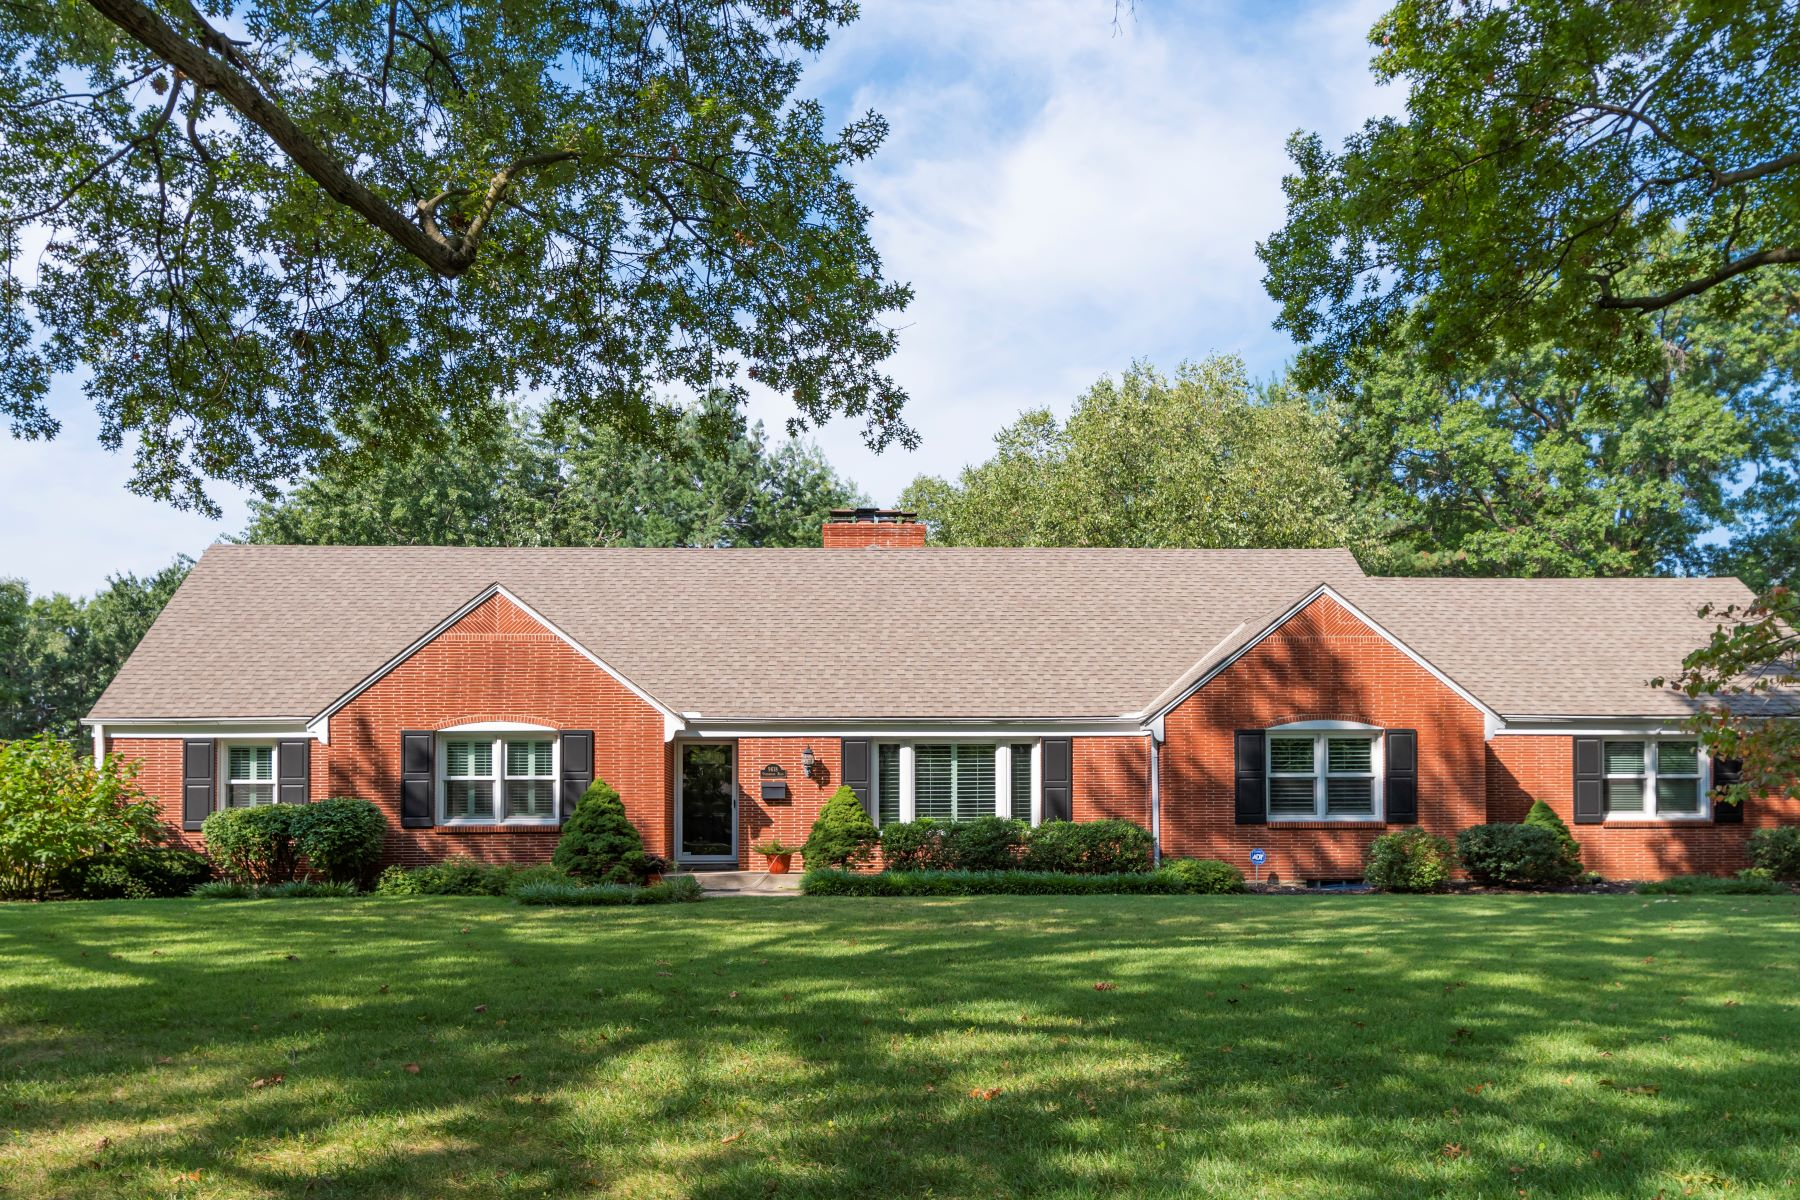 Single Family Homes for Active at At the end of a quiet cul-de-sac, this location is unmatched! 9618 Overbrook Road Leawood, Kansas 66208 United States